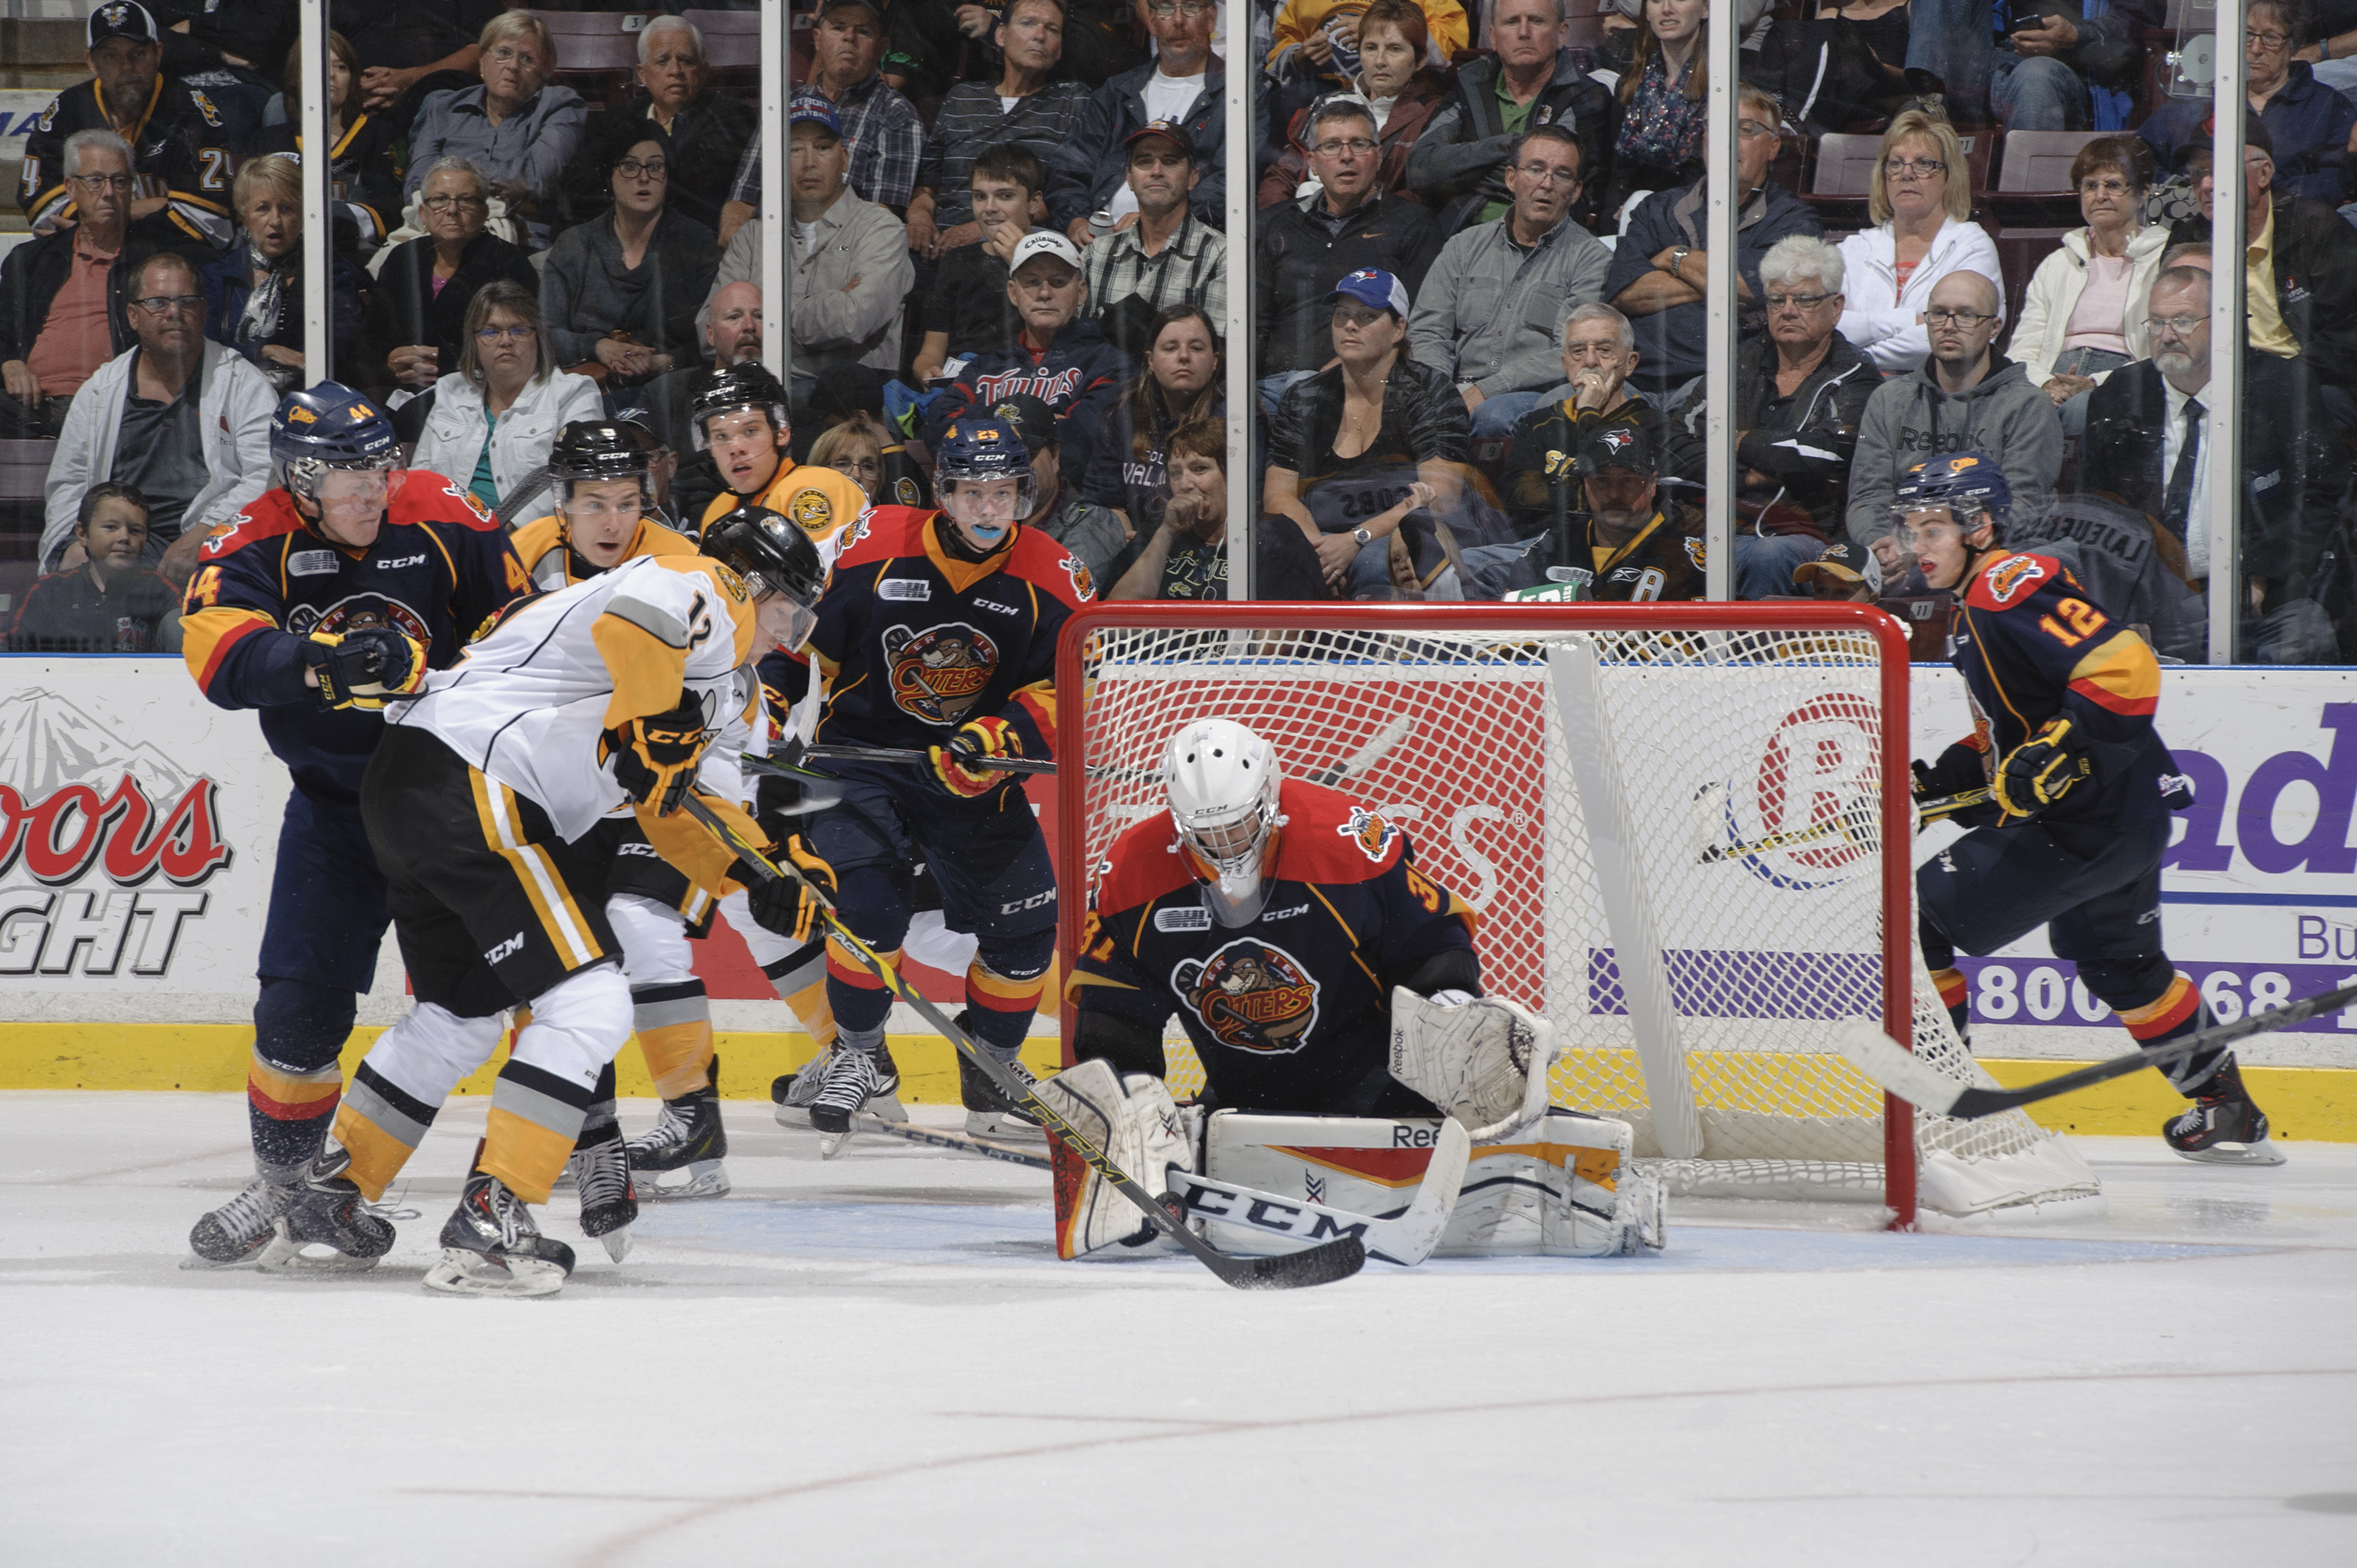 Otters Eliminate Sting From Playoffs